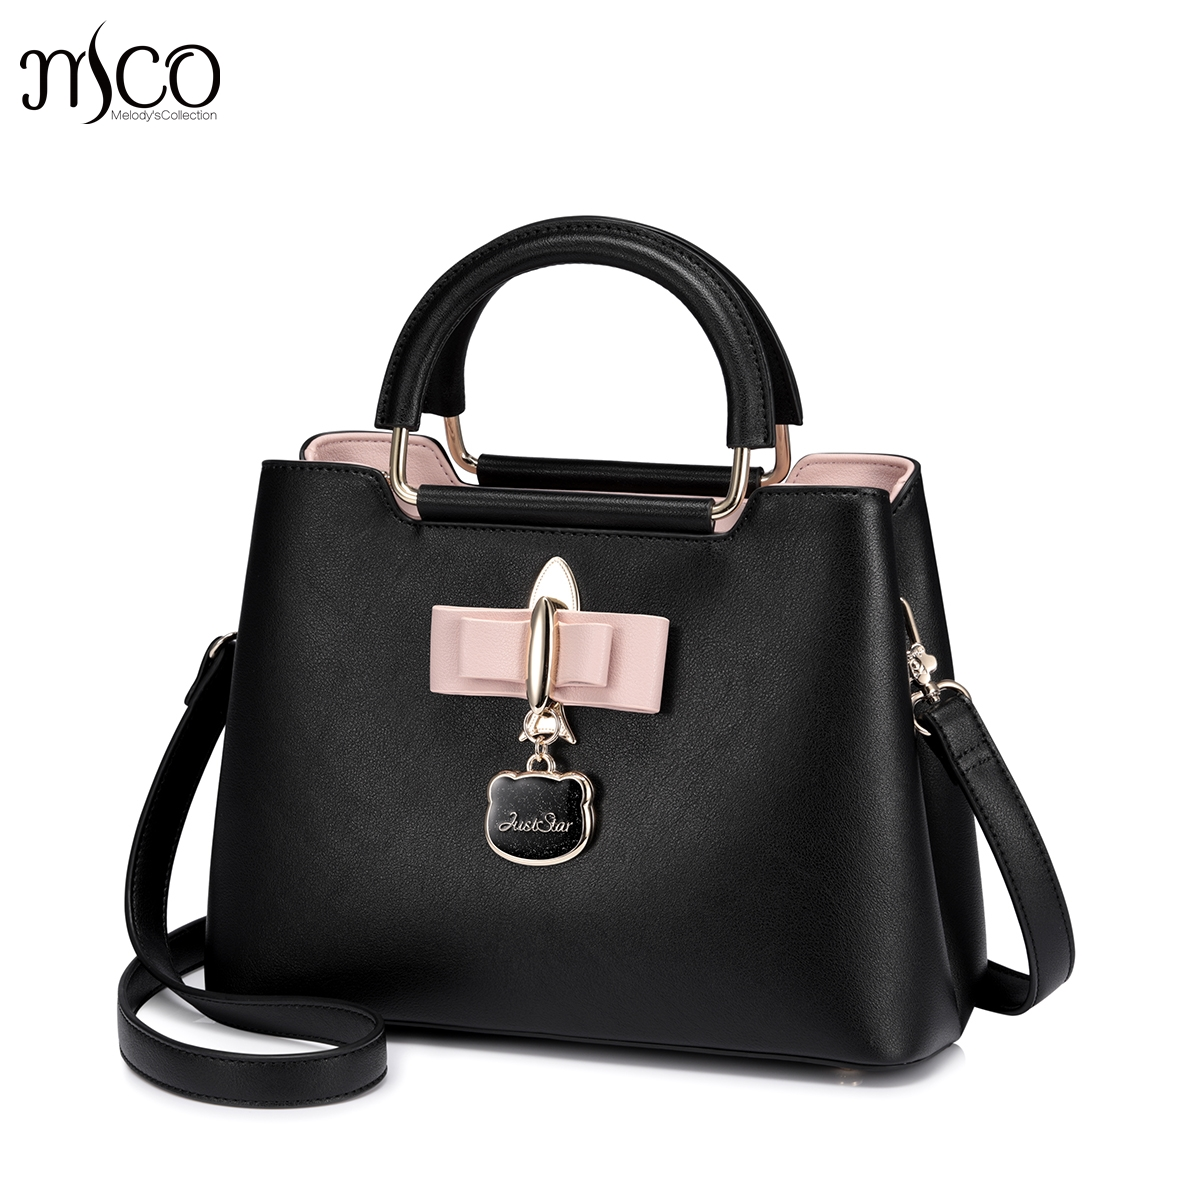 Just star designer brand luxury Pink Bow handbags women Shoulder bags sac a main femme clutch crossbody a bag bolsas feminina handbags women trapeze bolsas femininas sac lovely monkey pendant star sequins embroidery pearls bags pink black shoulder bag